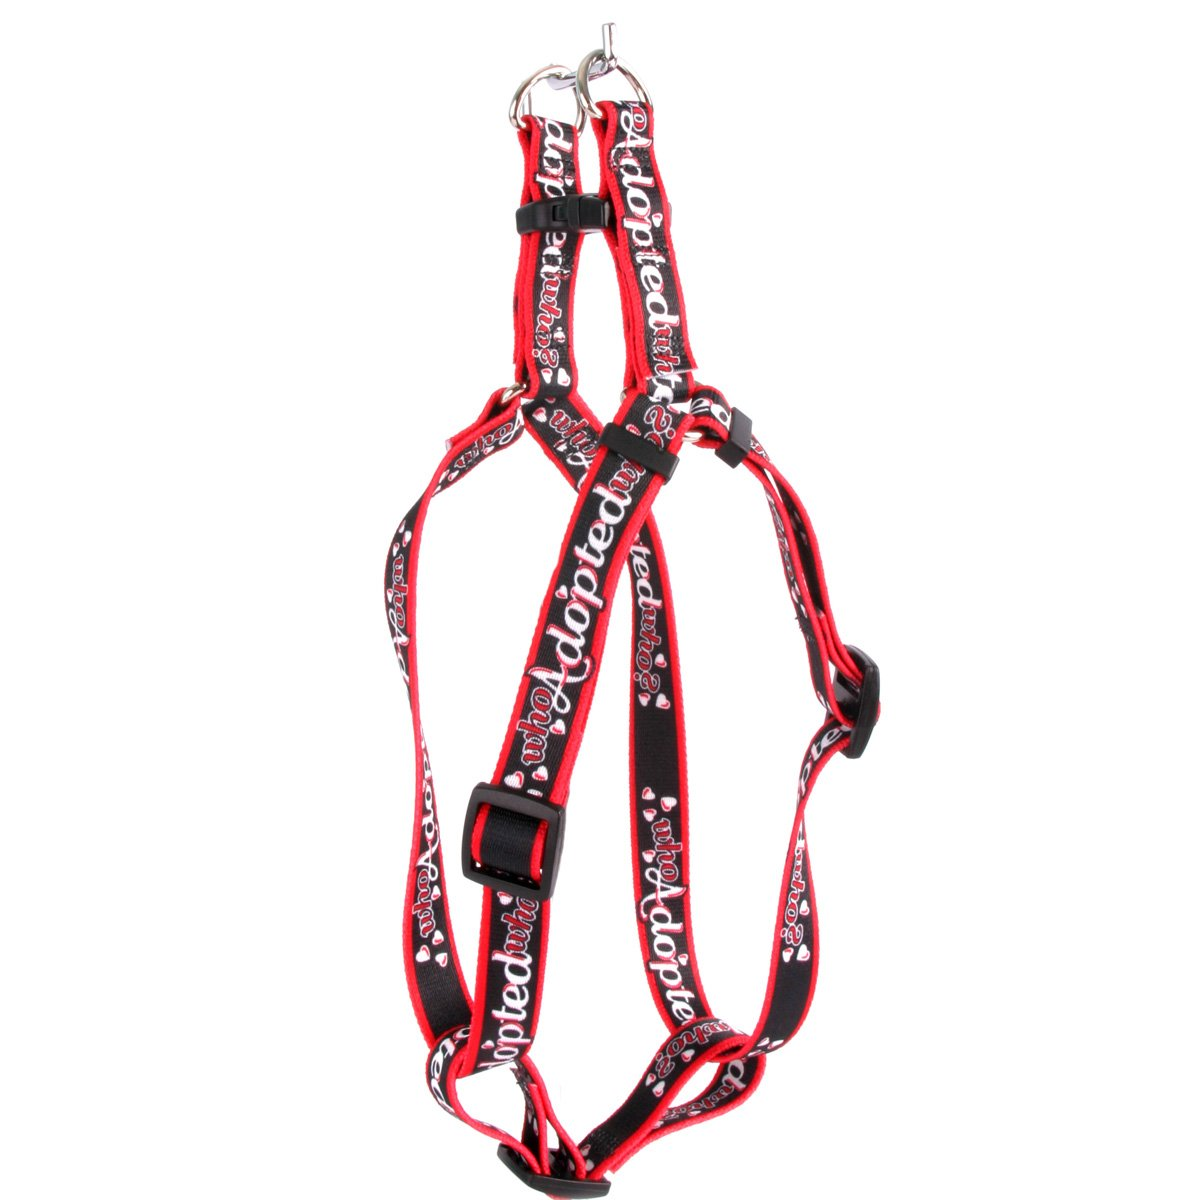 L Yellow Dog Design Step-In Harness, Large, Who Adopted Who